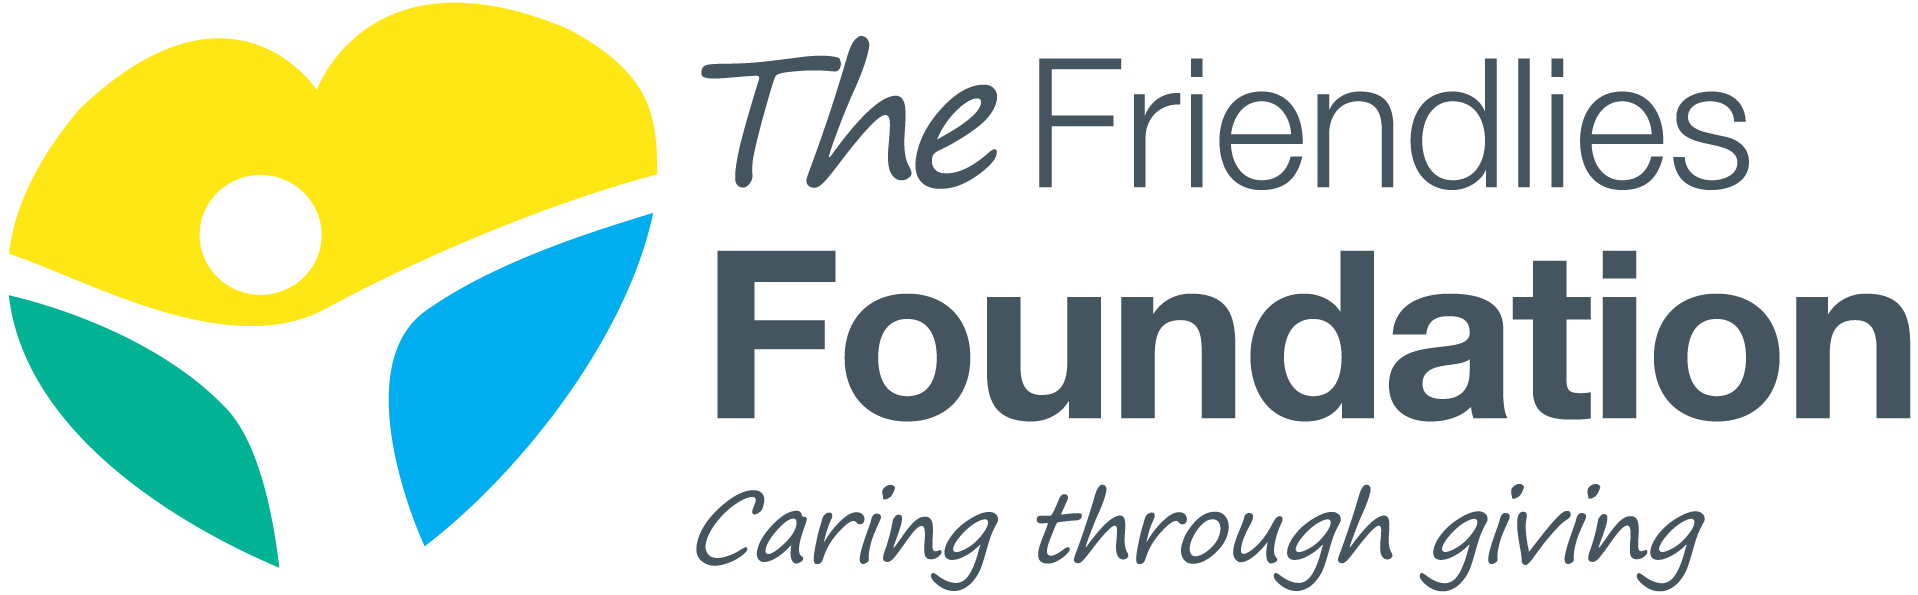 What is The Friendlies Foundation?